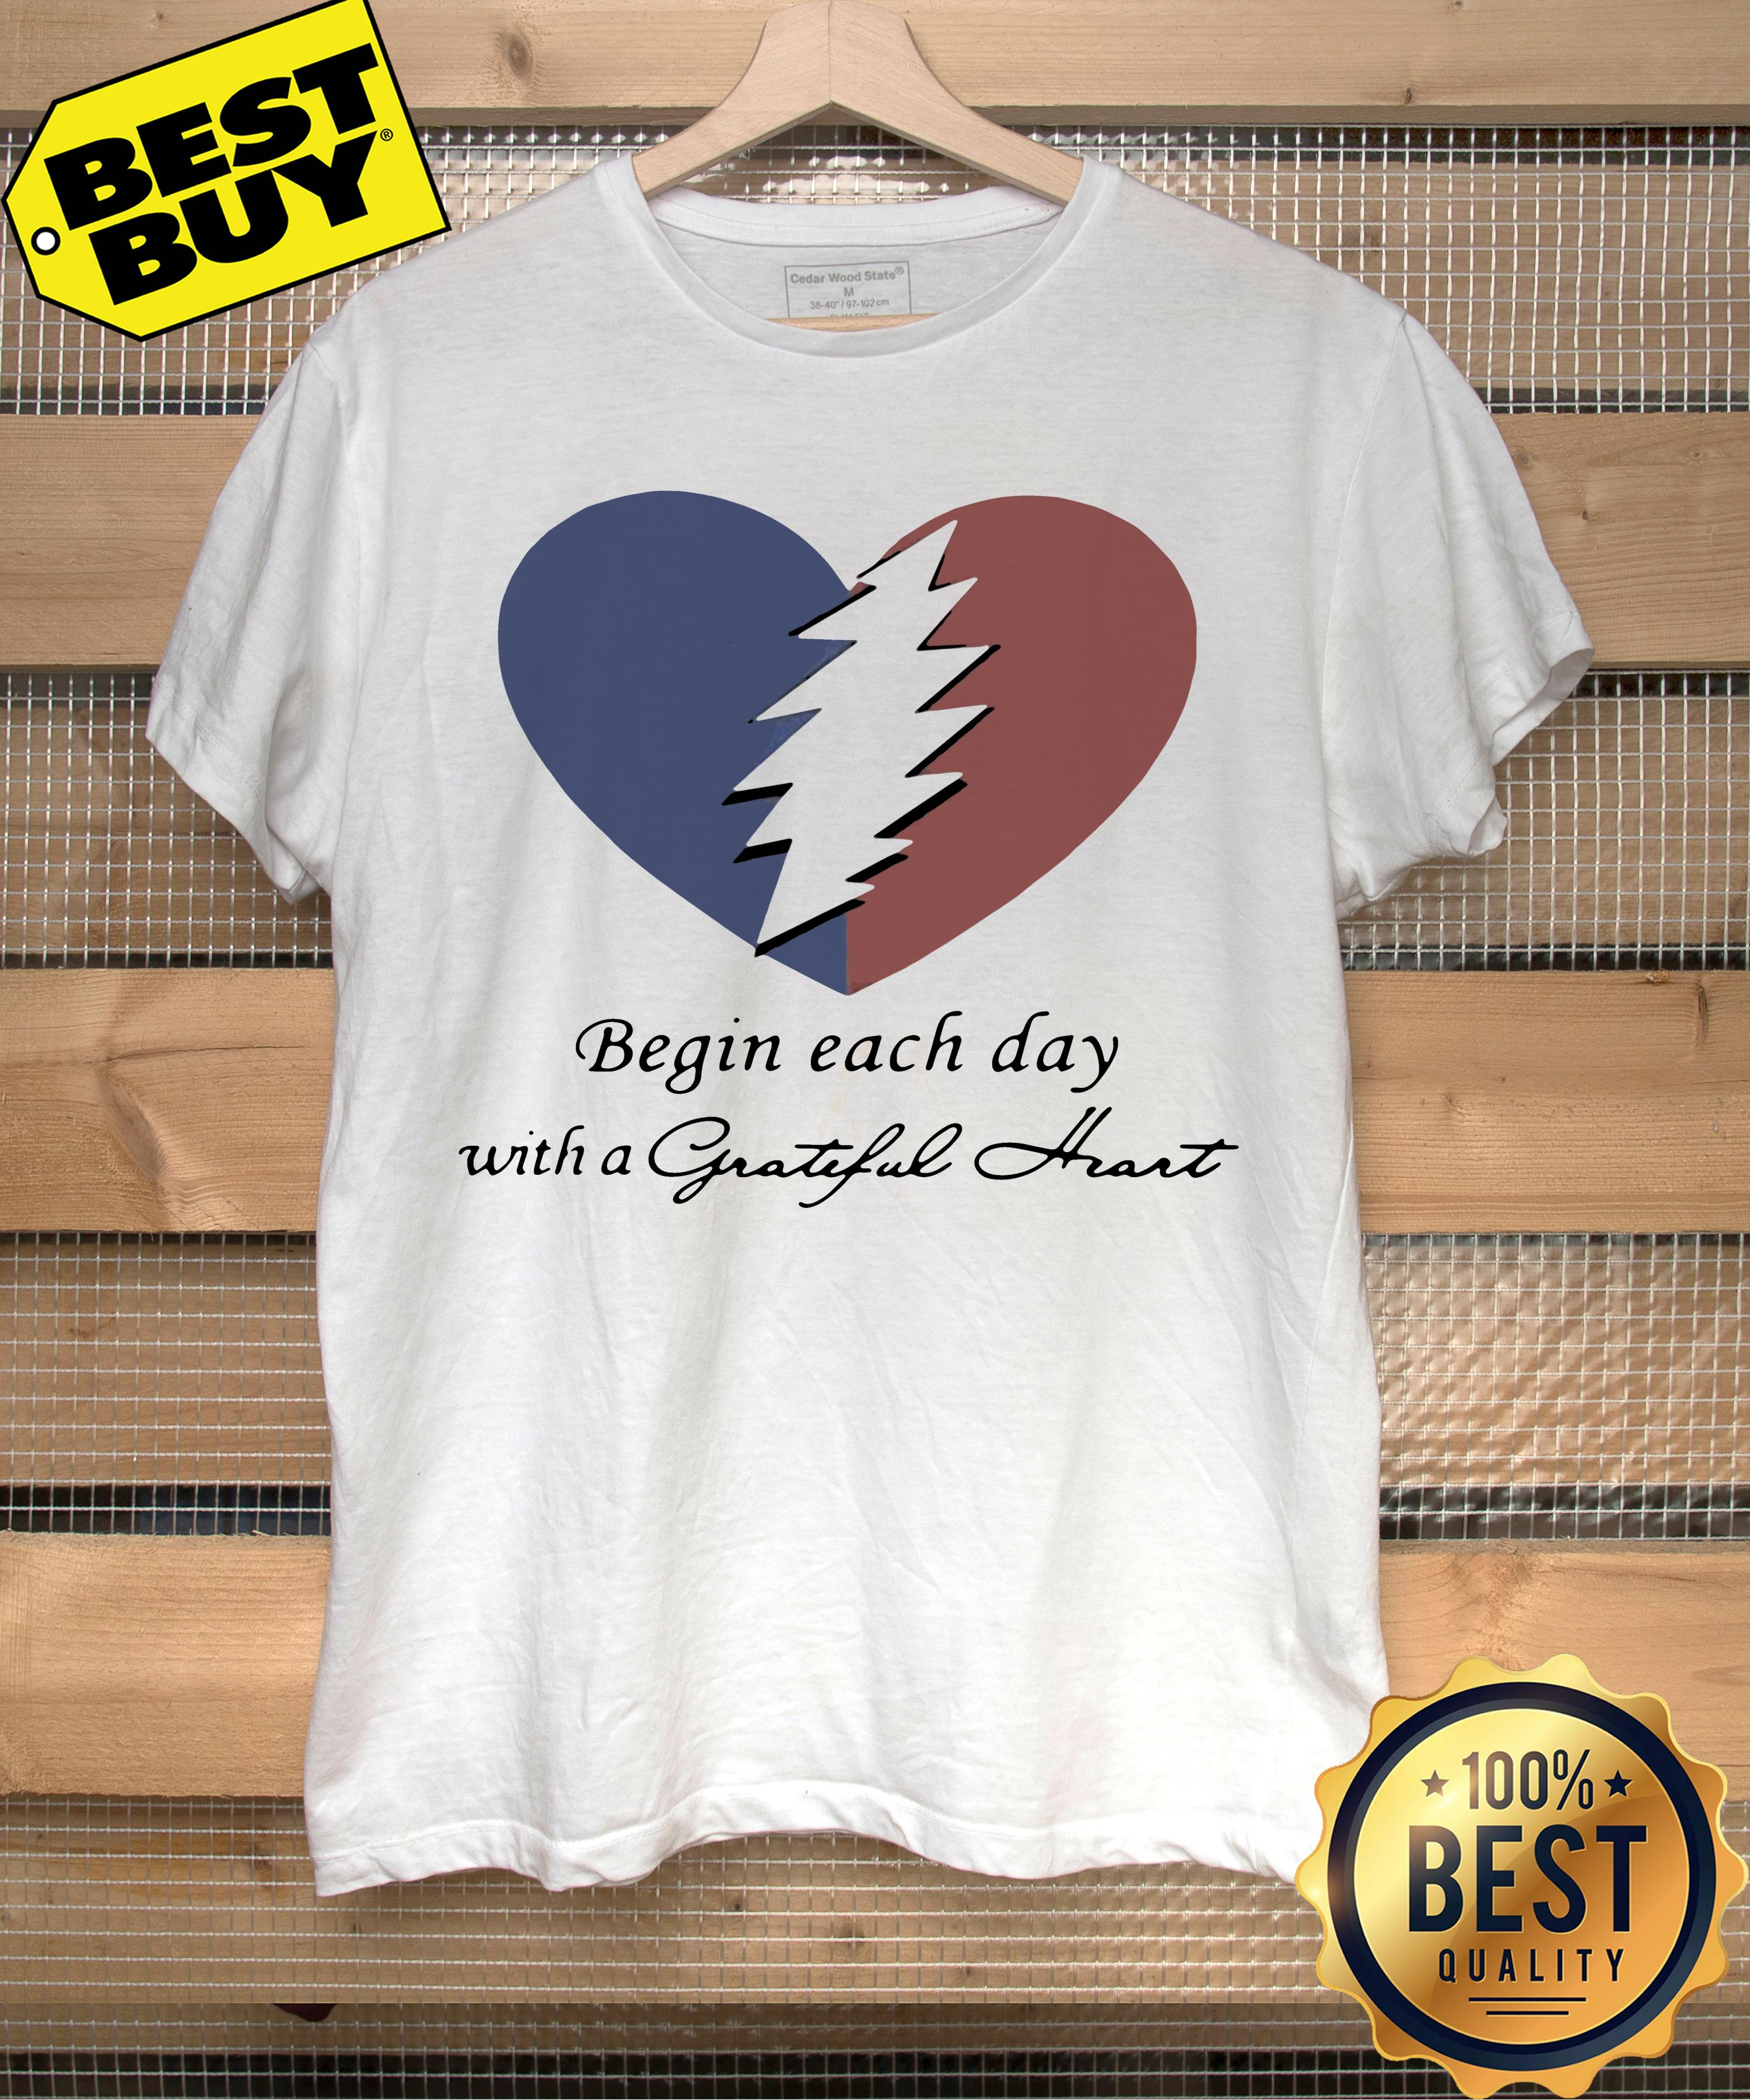 Begin each day with a grateful heart hoodie